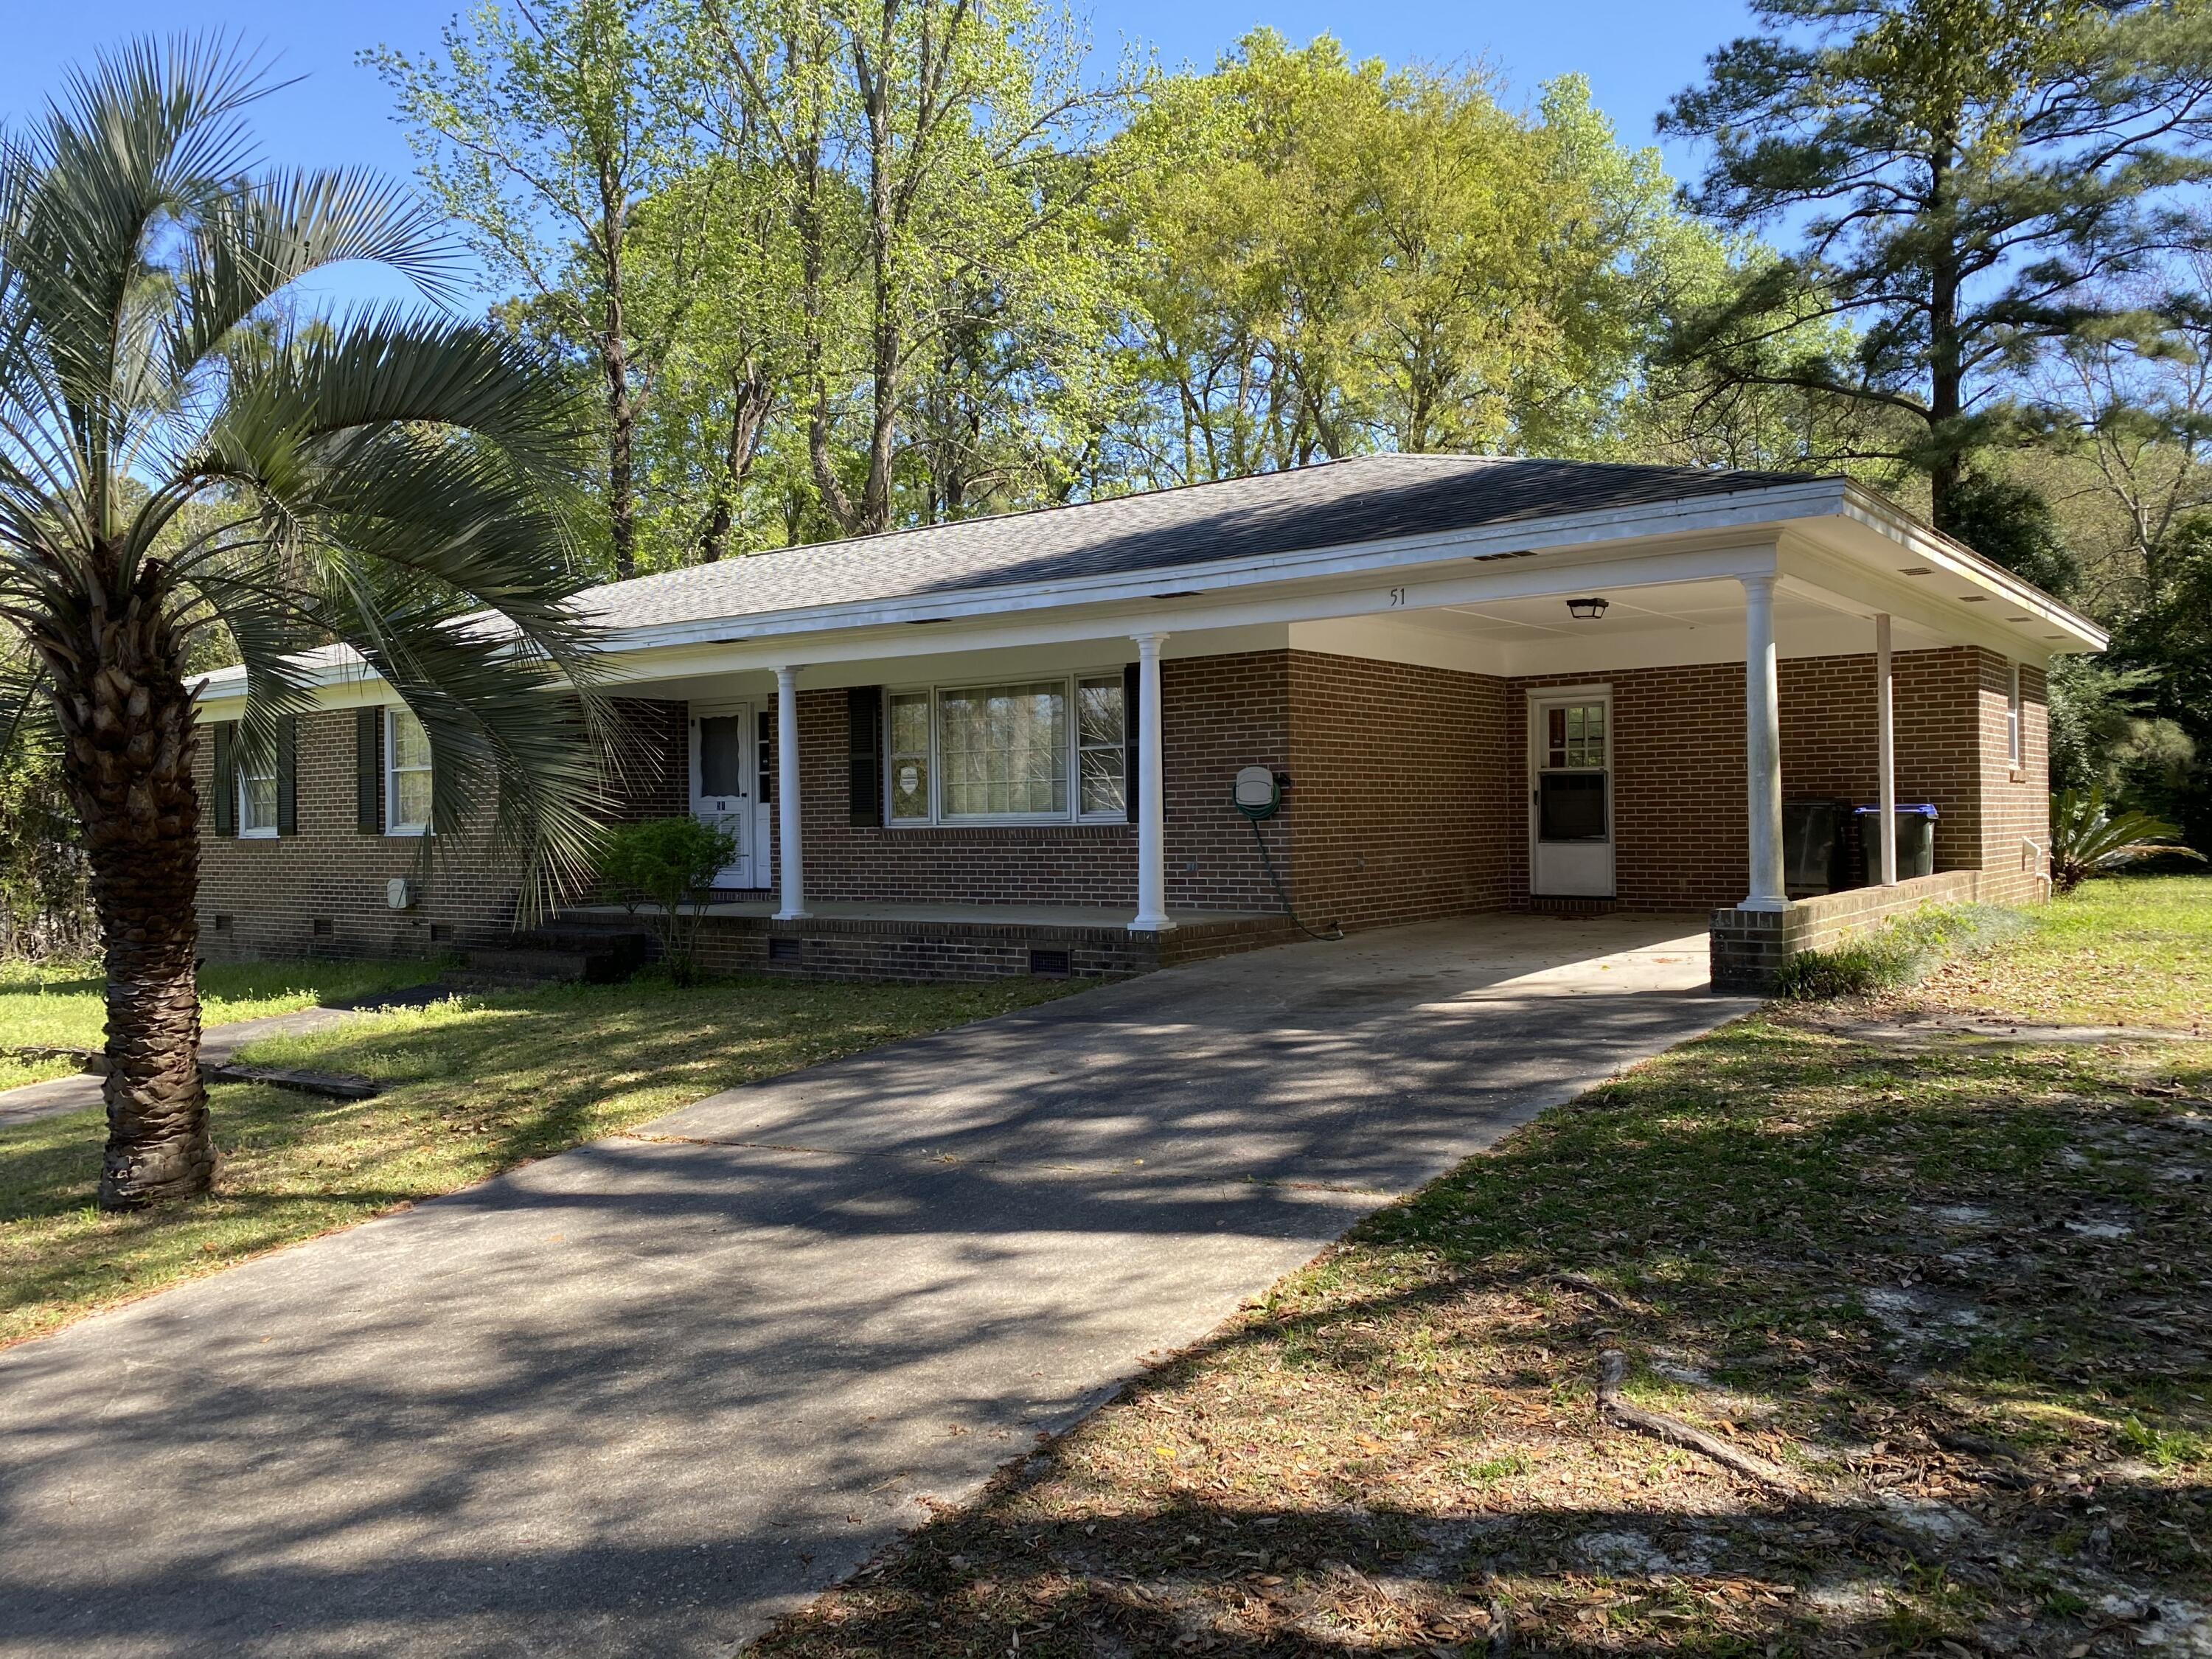 51 Old Trolley Road Summerville, Sc 29485